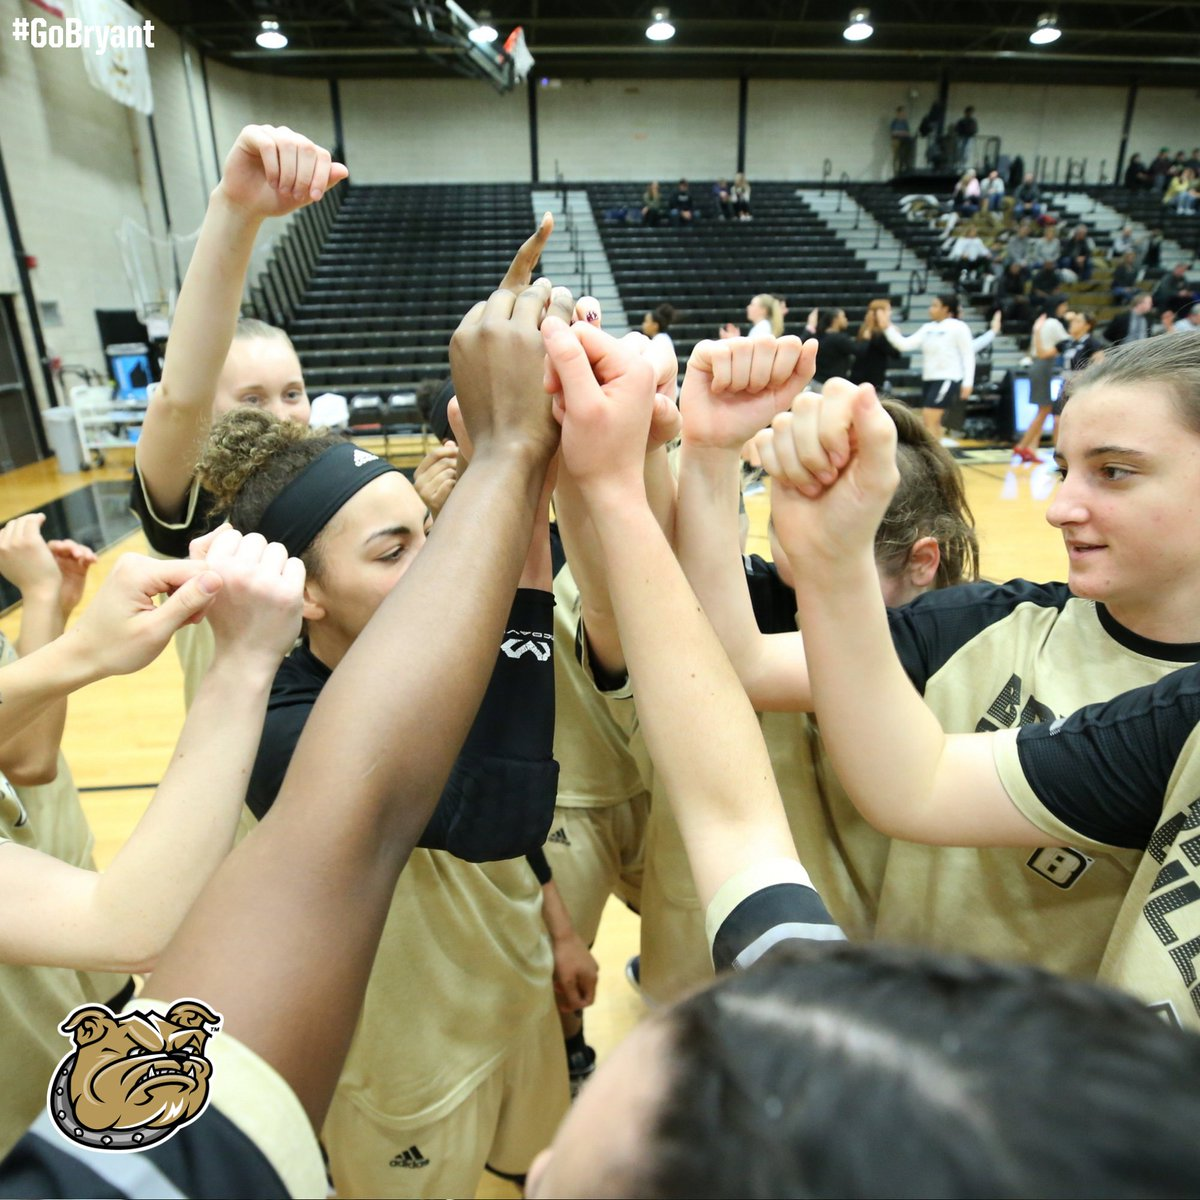 Less than an hour remains in the Jeff Doppelt '73 Black and Gold Challenge!   Help support our program before time runs out at http://BryantBulldogs.com/giving  #GoBryant